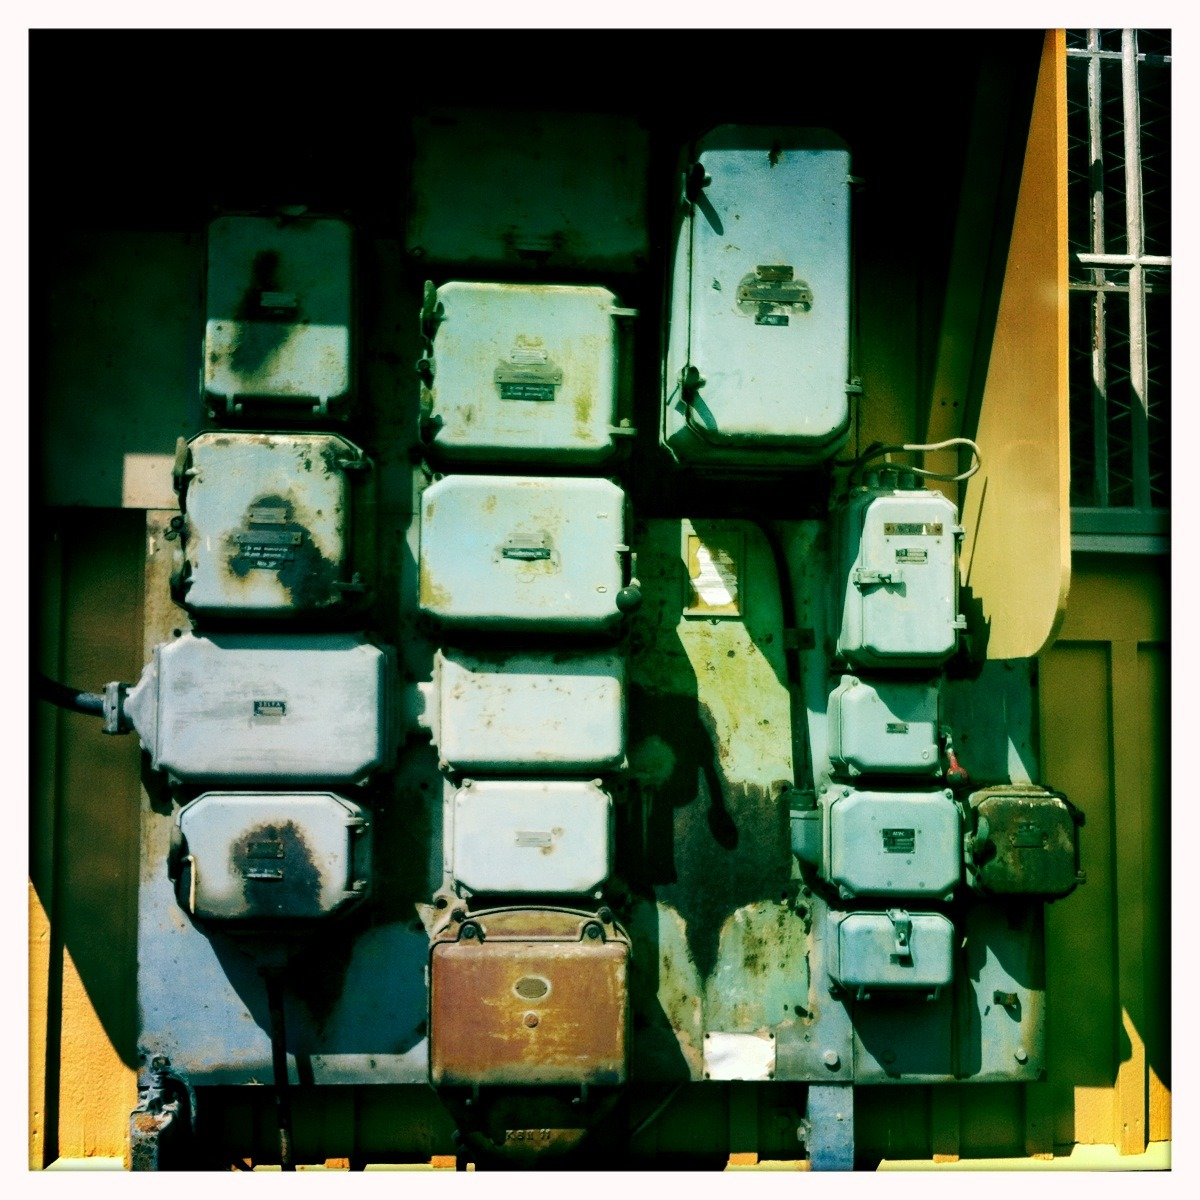 In an alleyway behind the Post office I found the 1927 fuse box that controls all of Stockholm's electricity. It was guarded only by a slack-eyed pigeon.